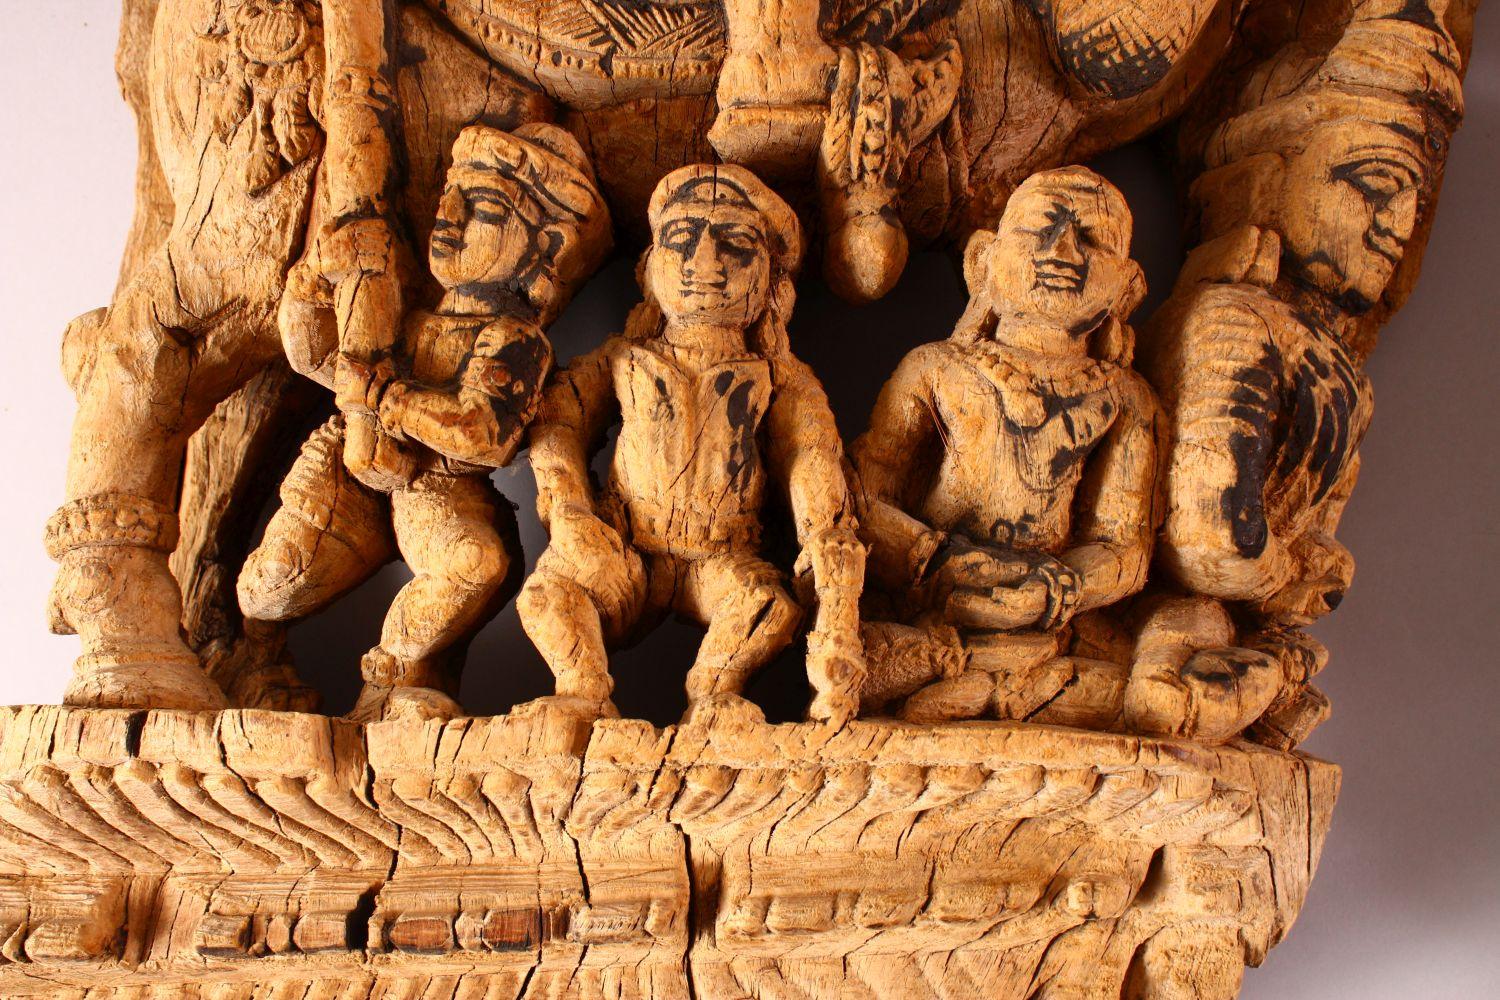 TWO 18TH/19TH CENTURY SOUTH INDIAN CARVED WOODEN PANELS, each depicting a figure on horseback with - Image 3 of 6